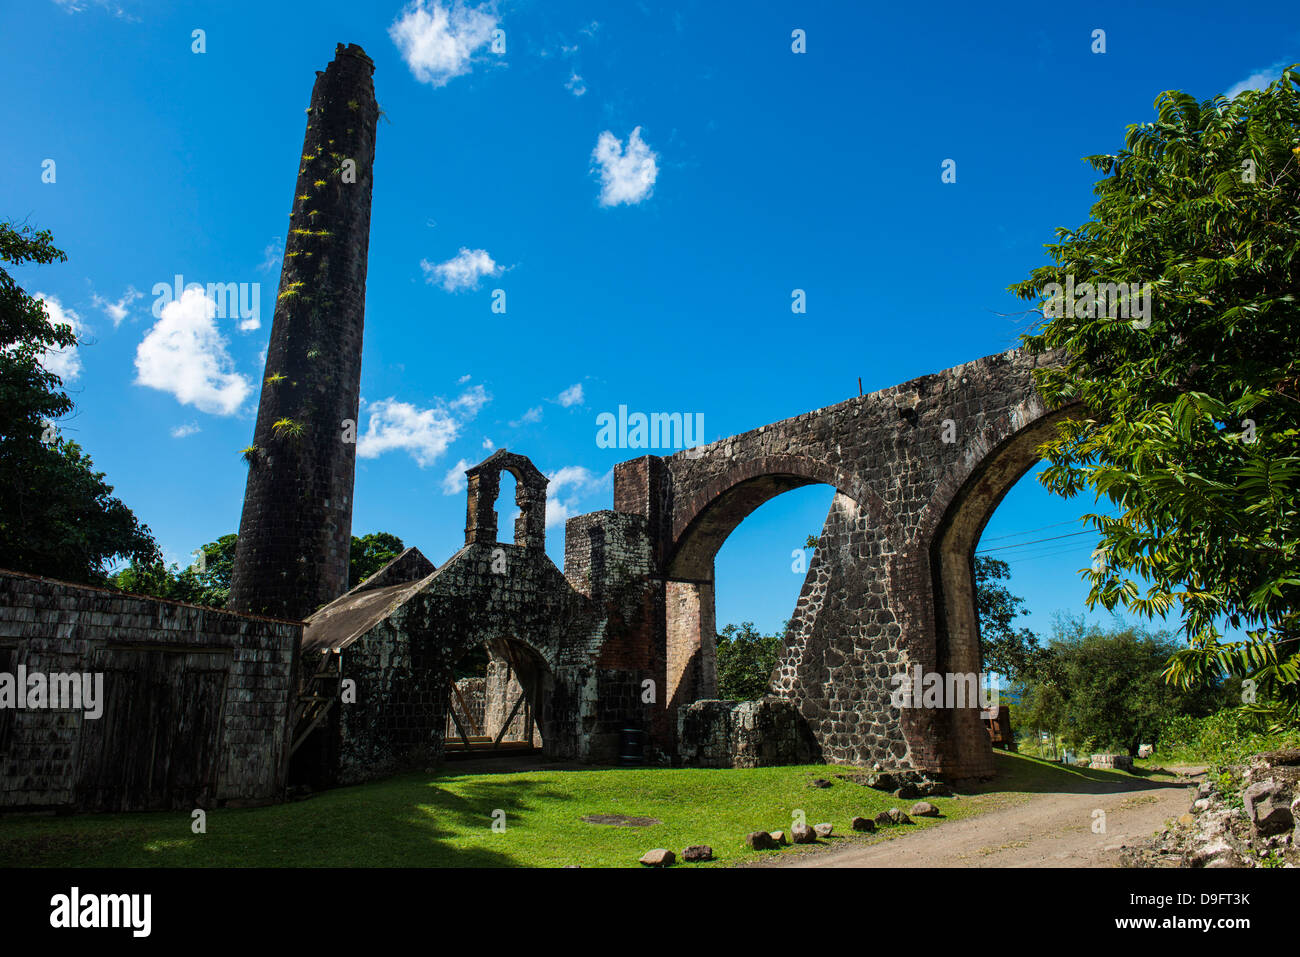 Ruins of an old mill, St. Kitt, St. Kitts and Nevis, Leeward Islands, West Indies, Caribbean - Stock Image